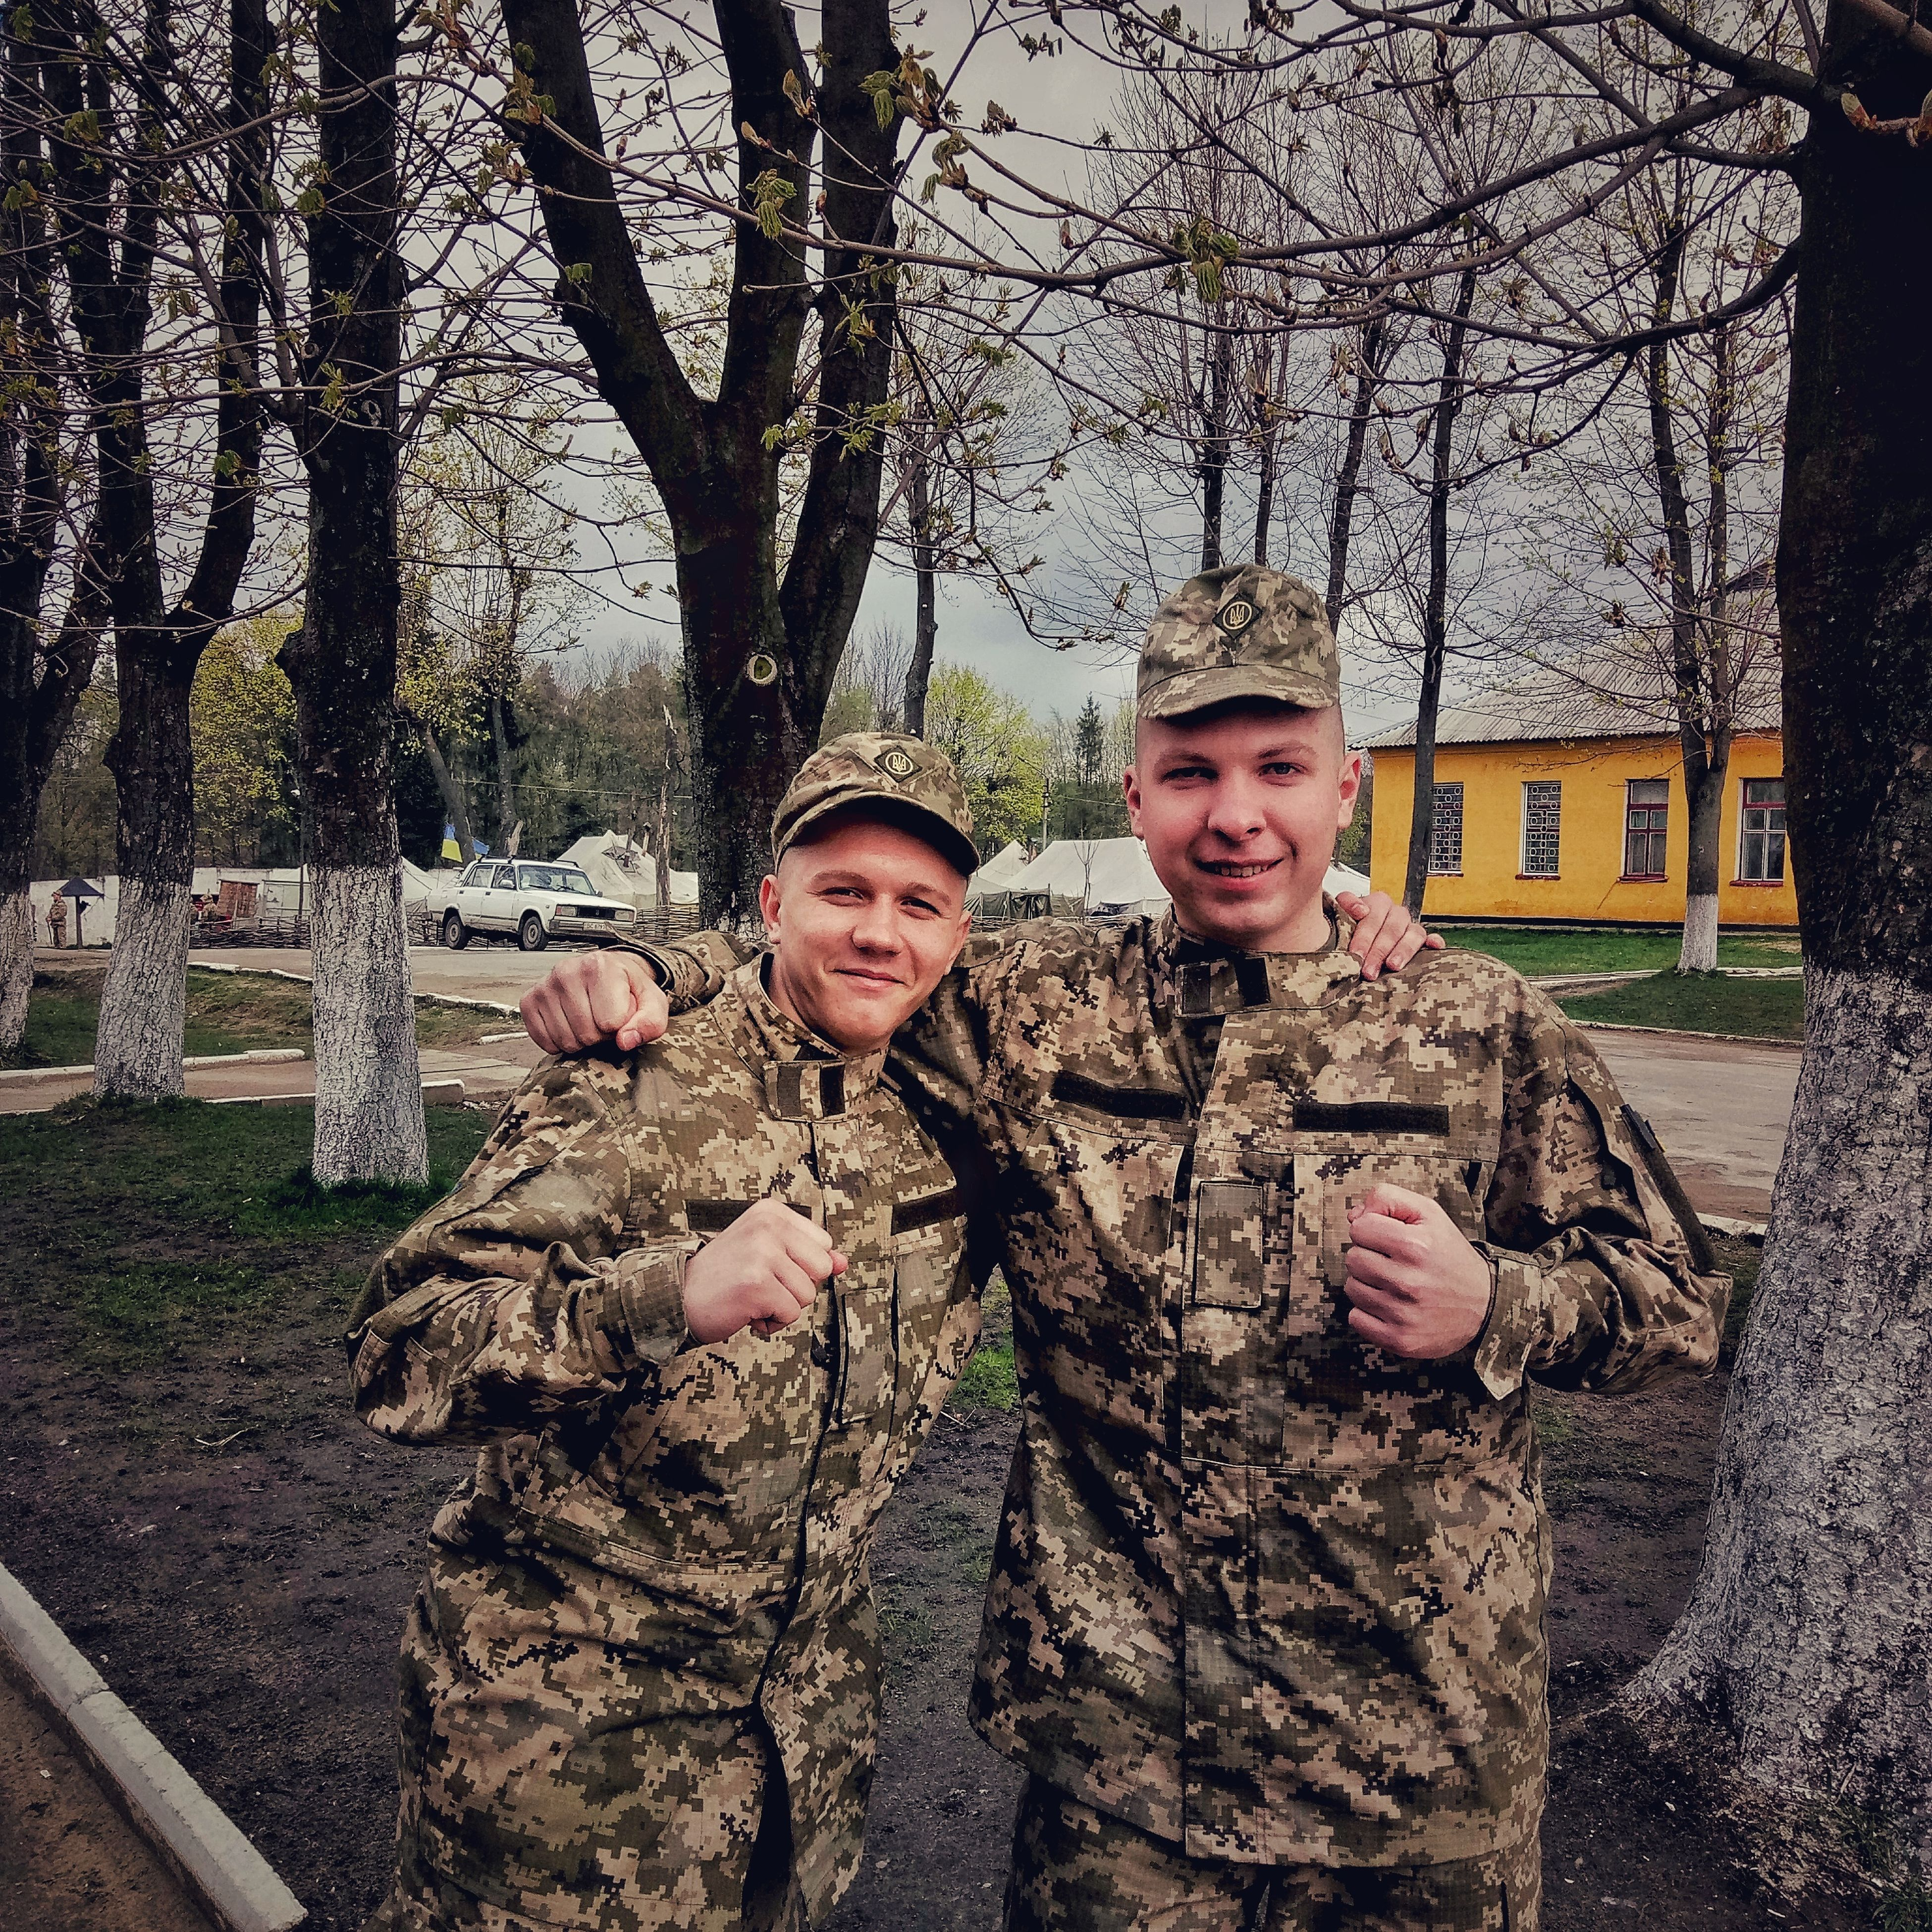 looking at camera, portrait, child, boys, childhood, two people, smiling, happiness, males, people, lifestyles, togetherness, family, military uniform, leisure activity, cheerful, friendship, tree, outdoors, military, adult, army, camouflage clothing, day